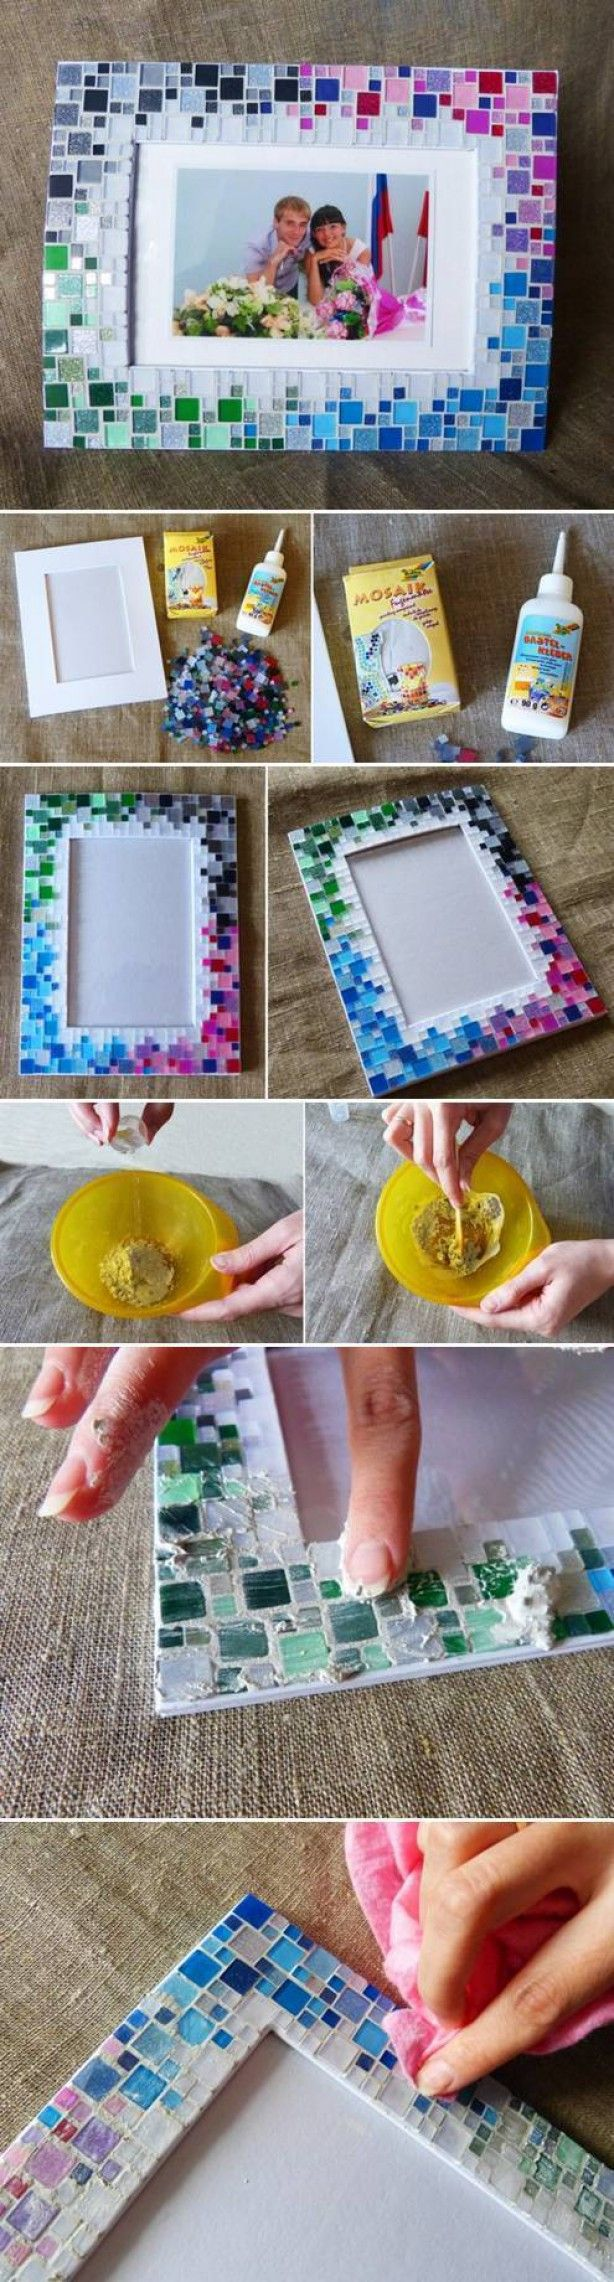 diy, tutorial, how to, instructions